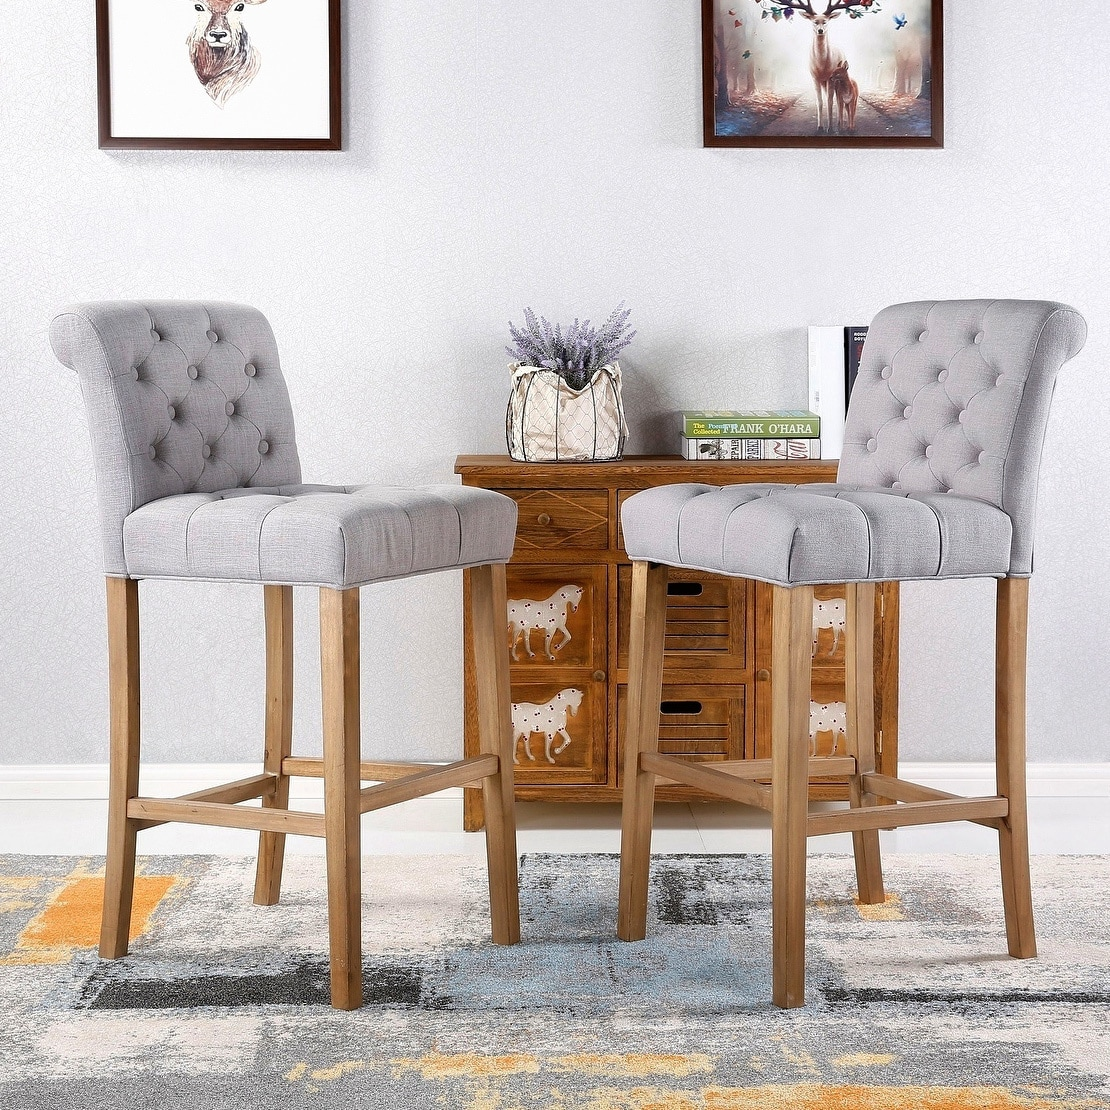 Cool Carlisle Bar Height Button Tufted Solid Wood Bar Stools Set Of 2 Unemploymentrelief Wooden Chair Designs For Living Room Unemploymentrelieforg